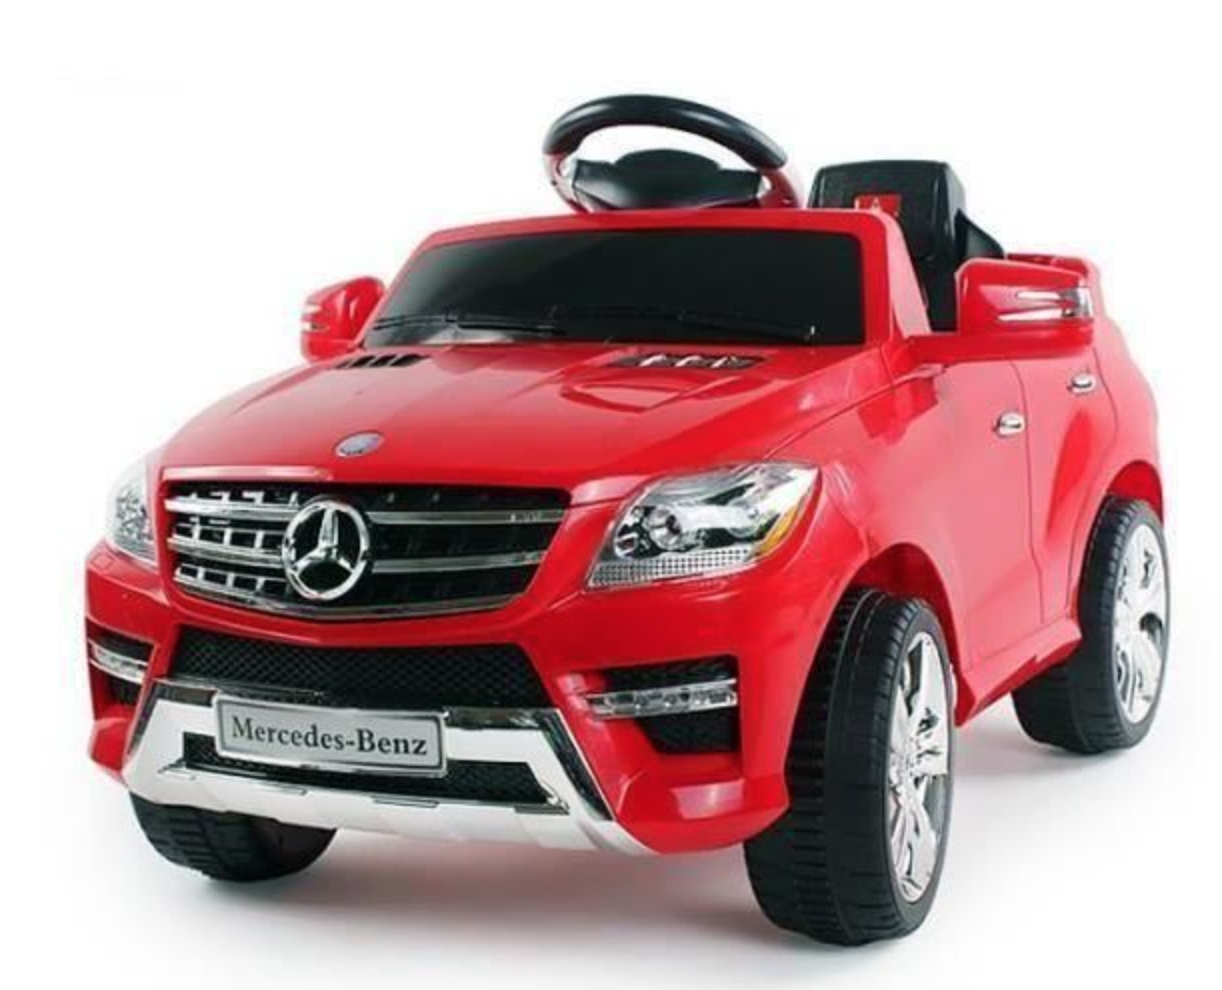 voiture lectrique mercedes ml 350 rouge. Black Bedroom Furniture Sets. Home Design Ideas